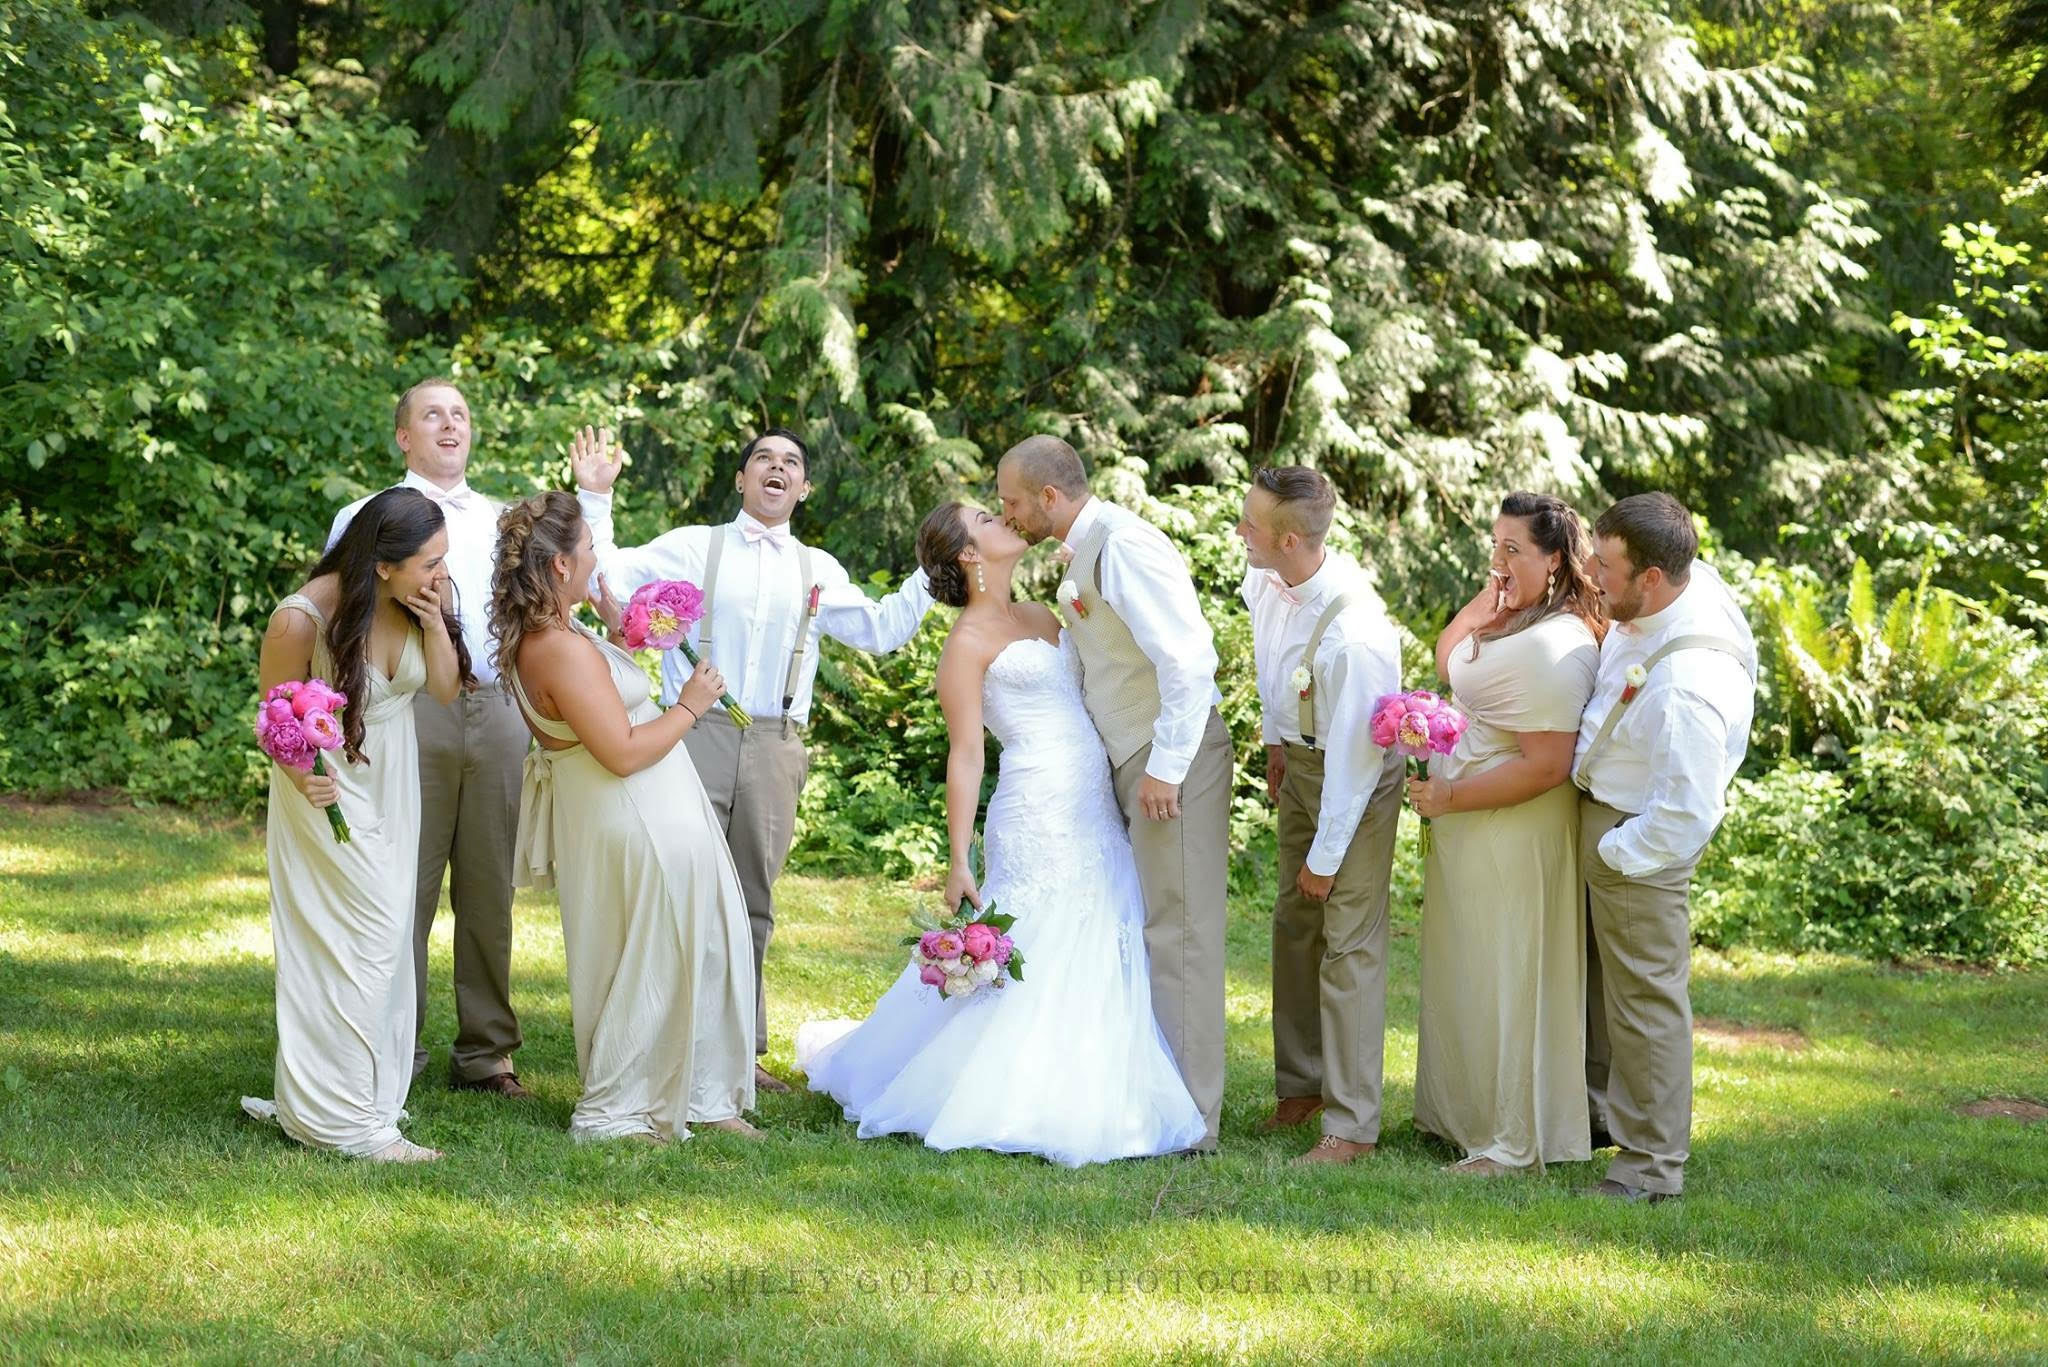 Weddings at Alderbrook Park